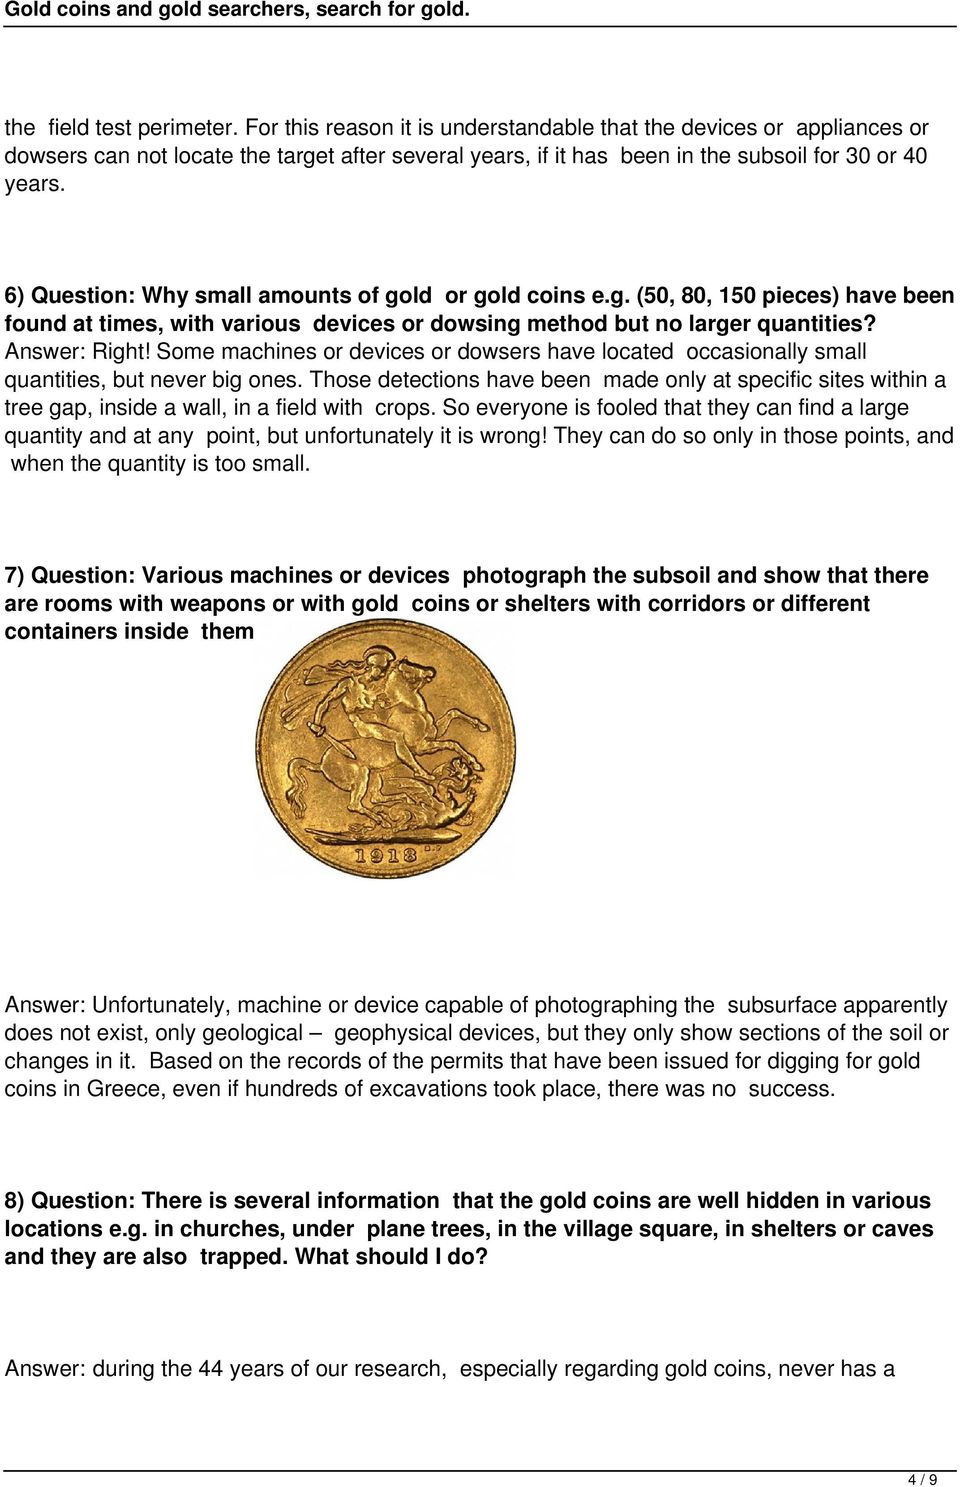 6) Question: Why small amounts of gold or gold coins e.g. (50, 80, 150 pieces) have been found at times, with various devices or dowsing method but no larger quantities? Answer: Right!